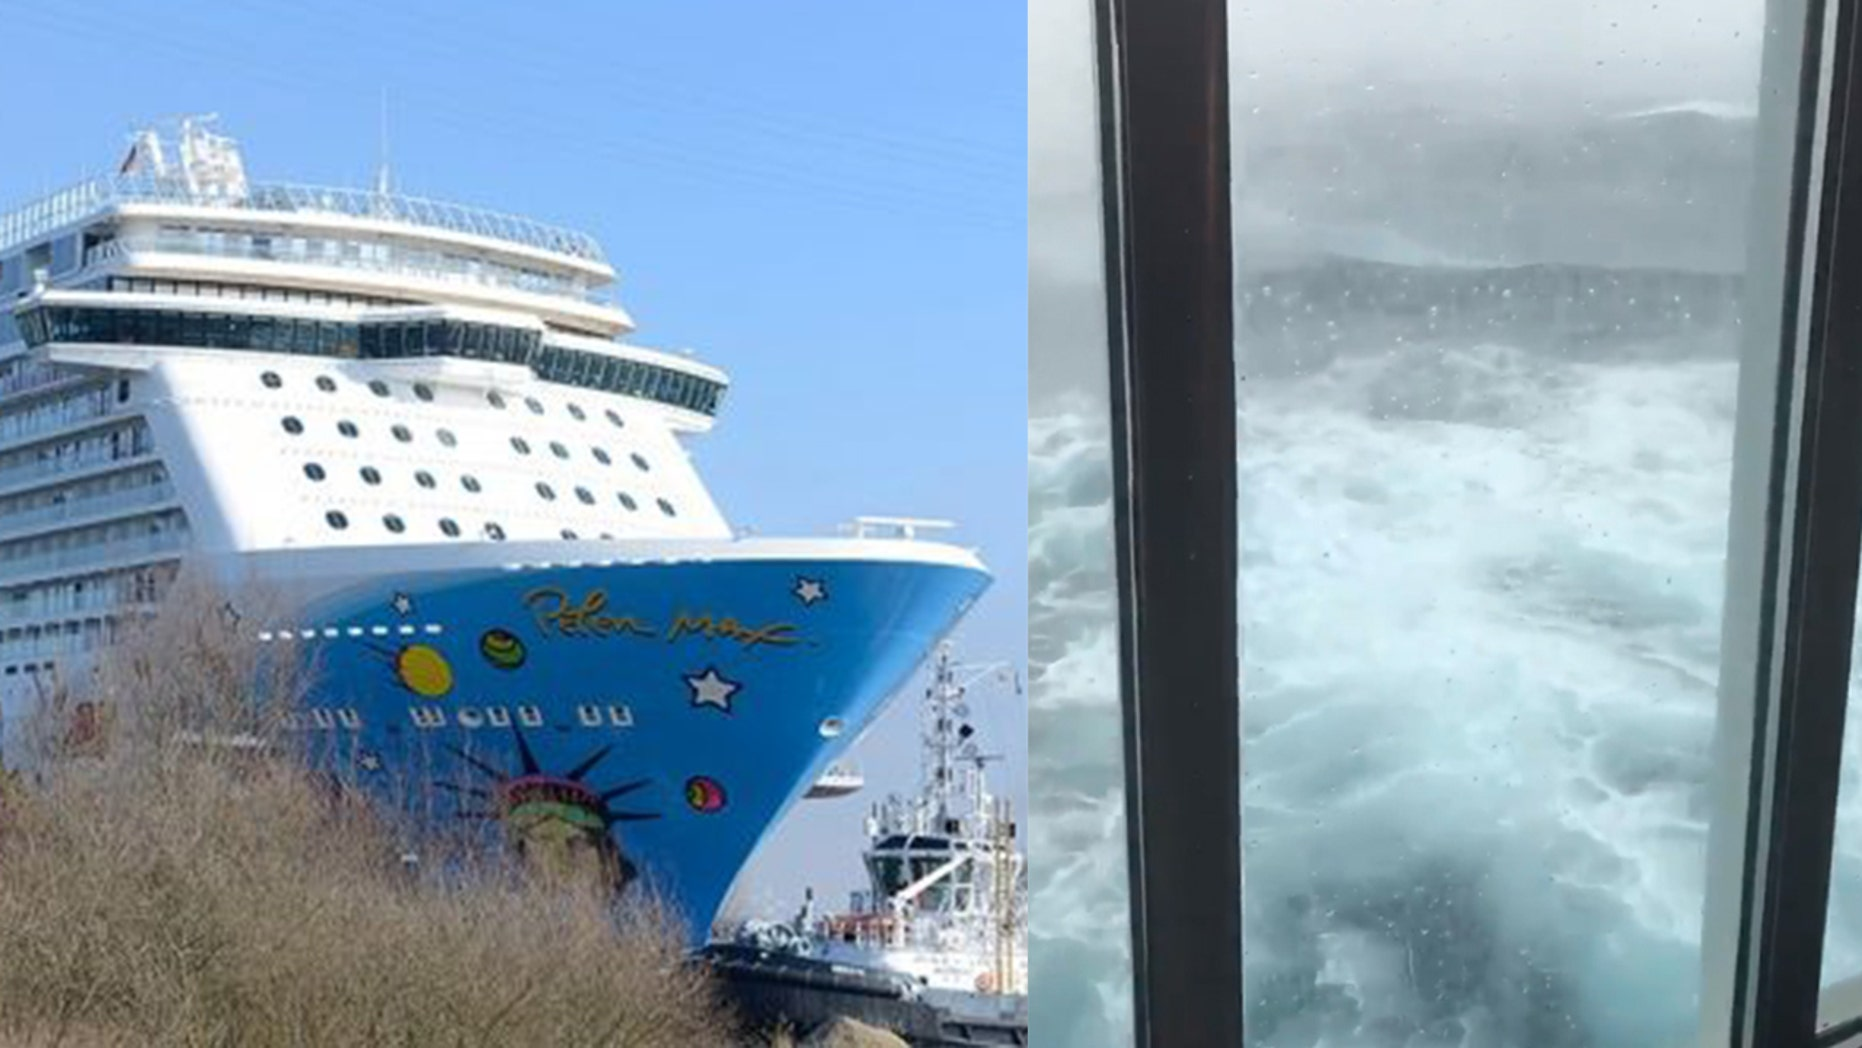 78a38fcce5a Norwegian Cruise Line passengers consider suing after ship sails through  winter storm